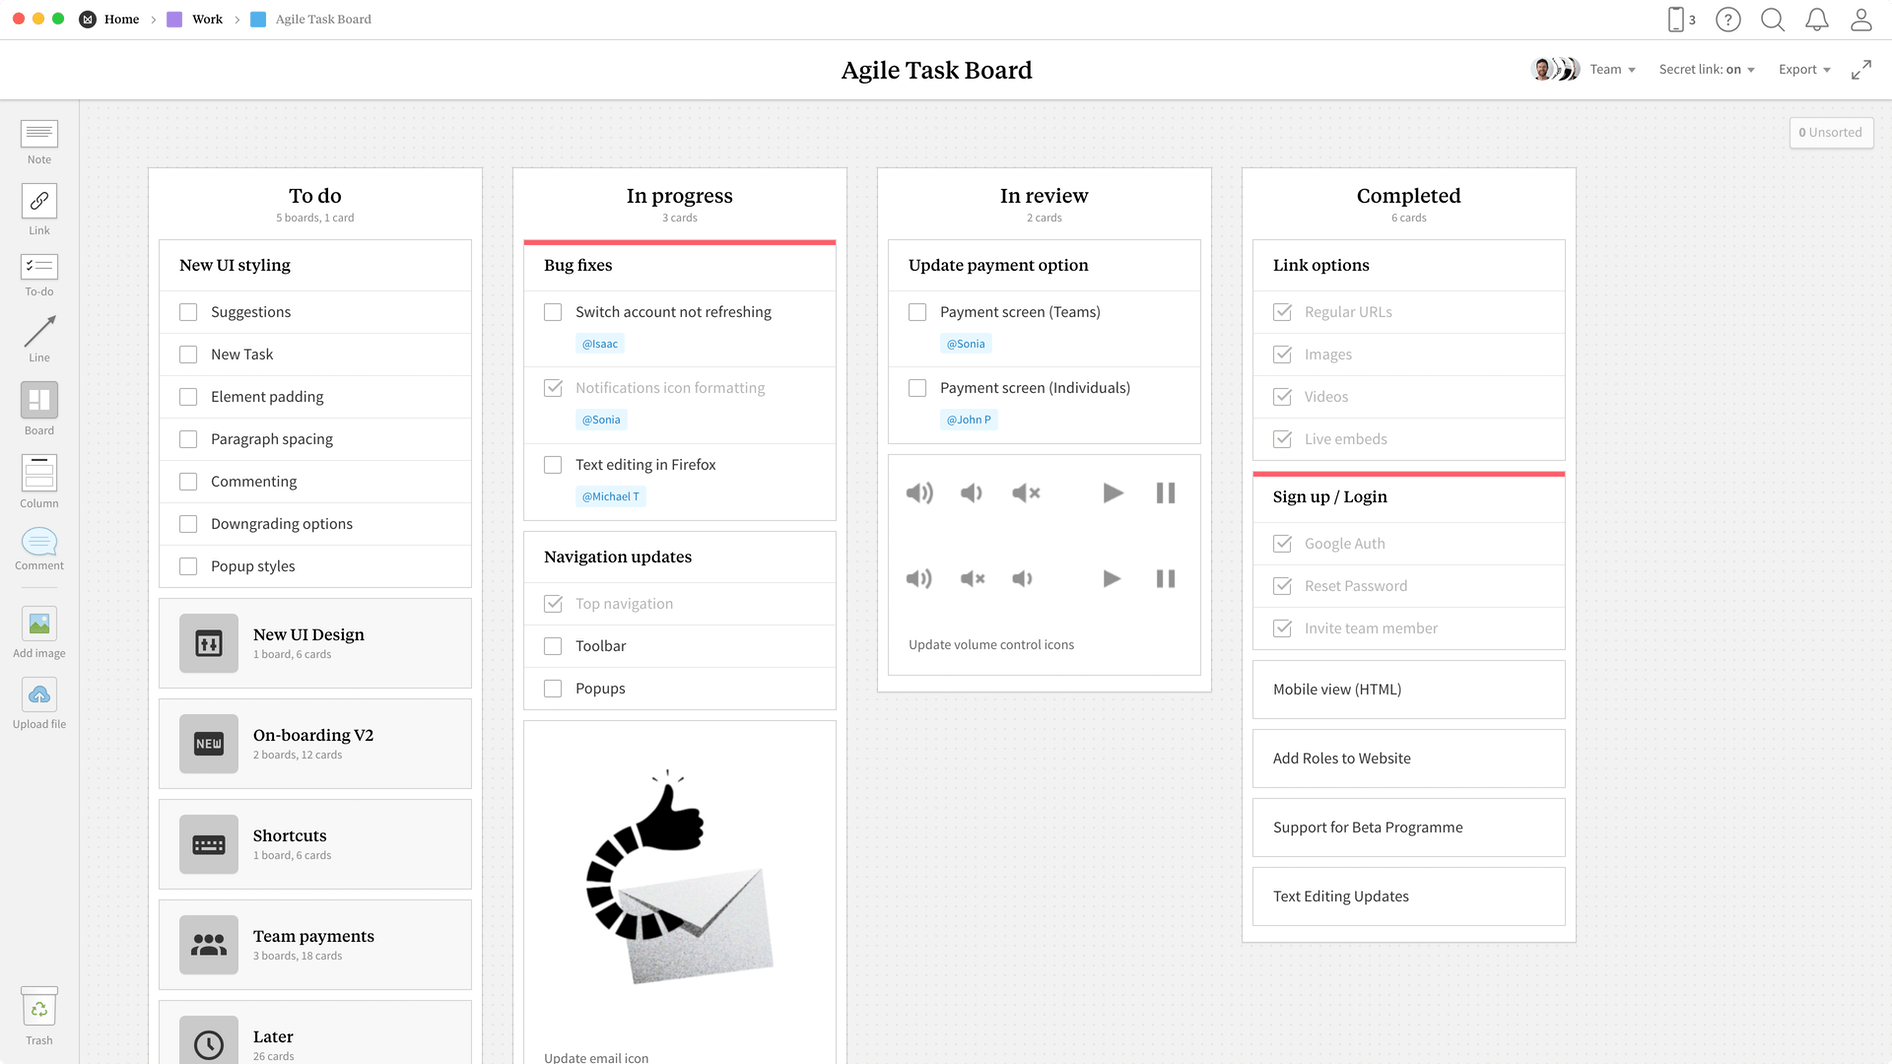 Agile Task Board Template, within the Milanote app